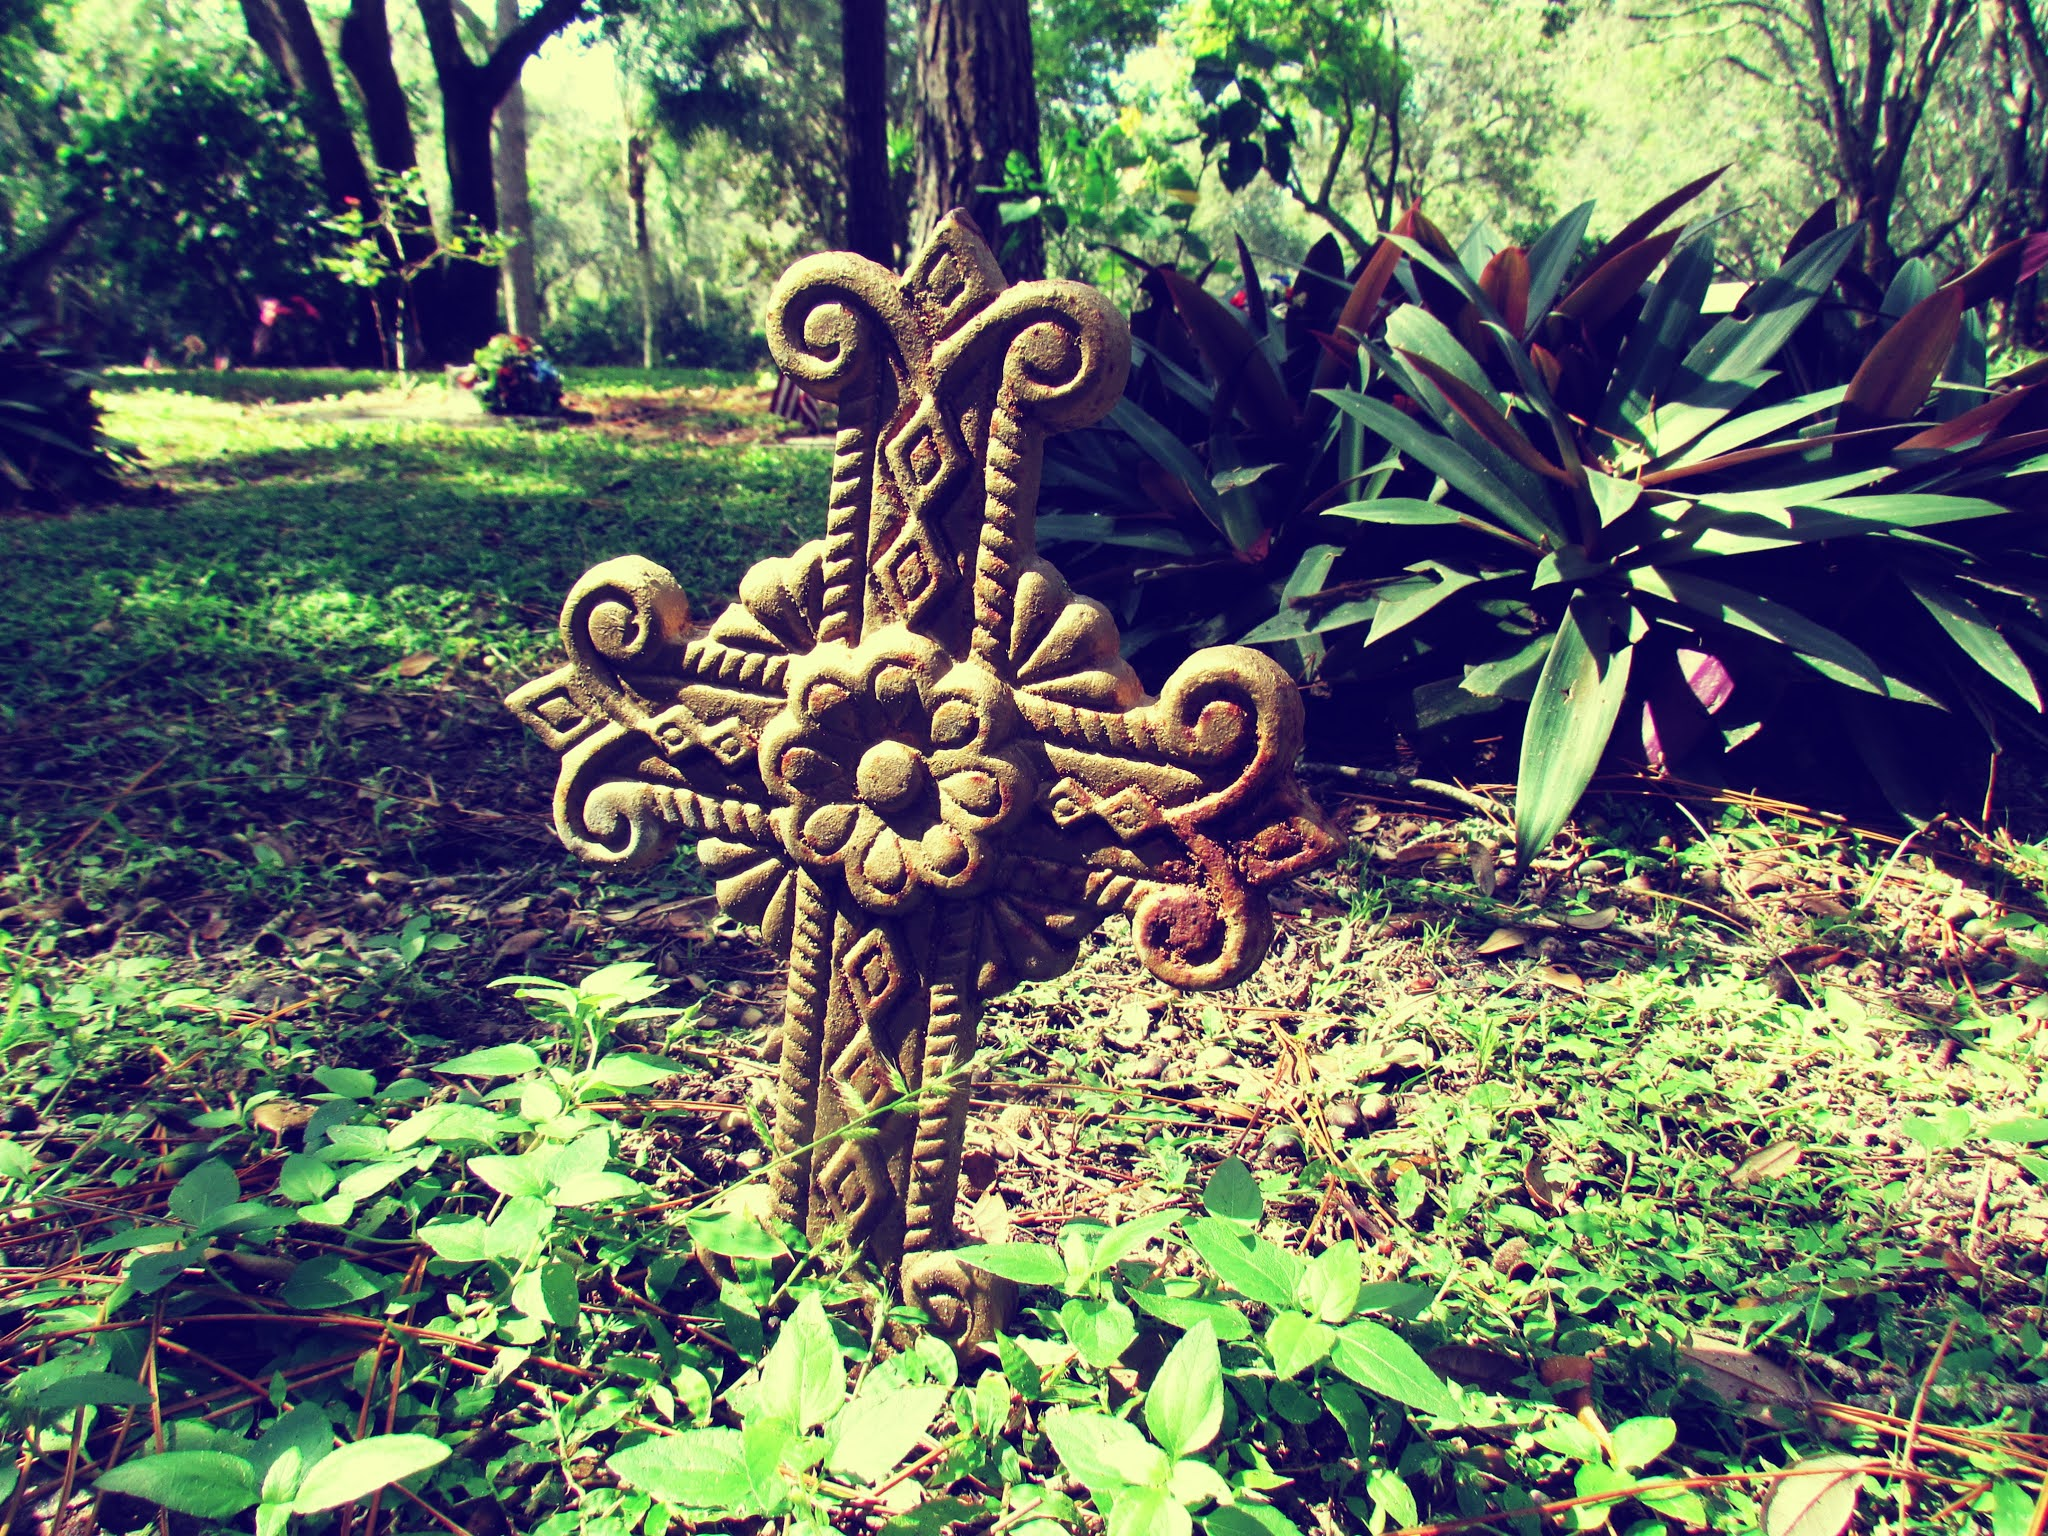 Rustic Gothic Cross Headstone For Gravestone Statues